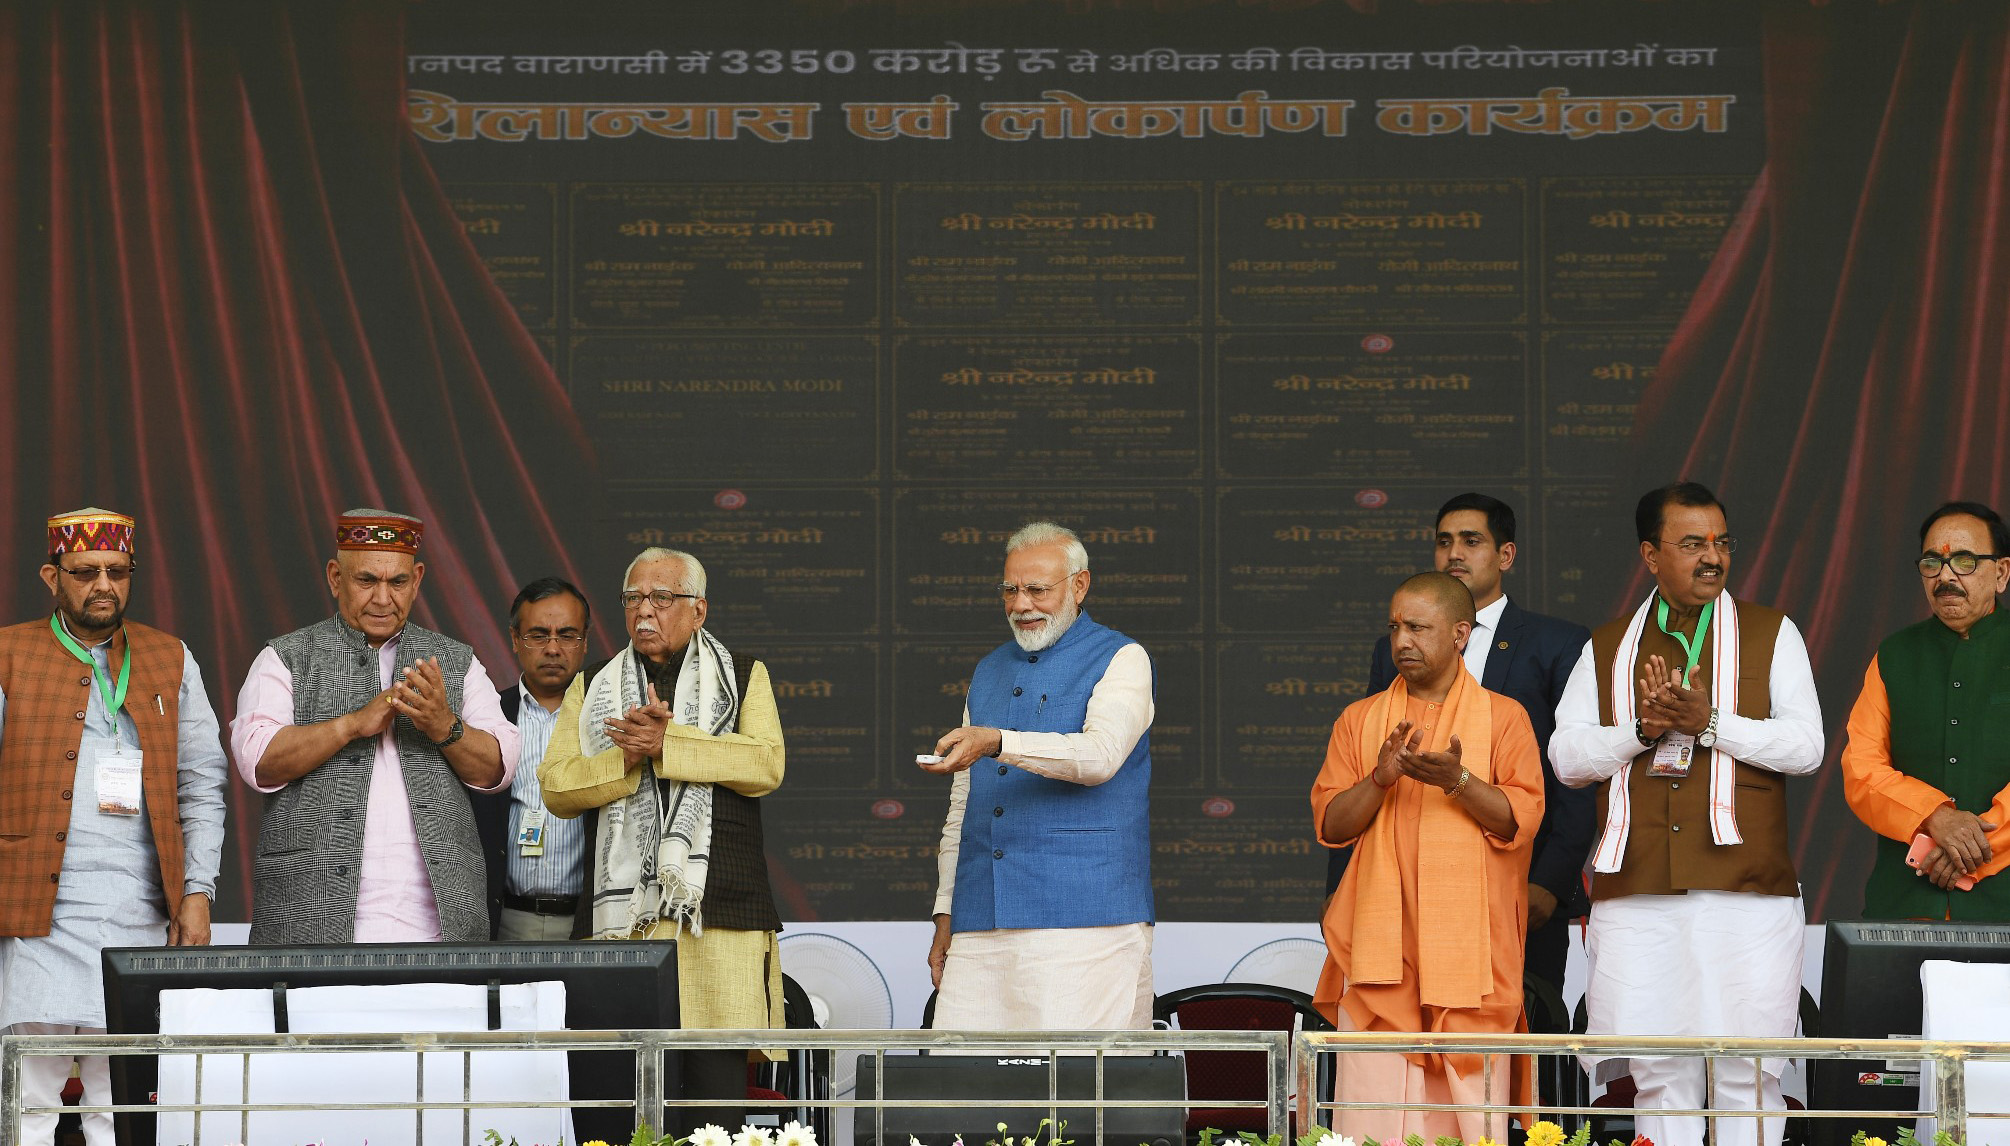 Development Projects worth Rs. 3350 crores unveiled by PM in Varanasi